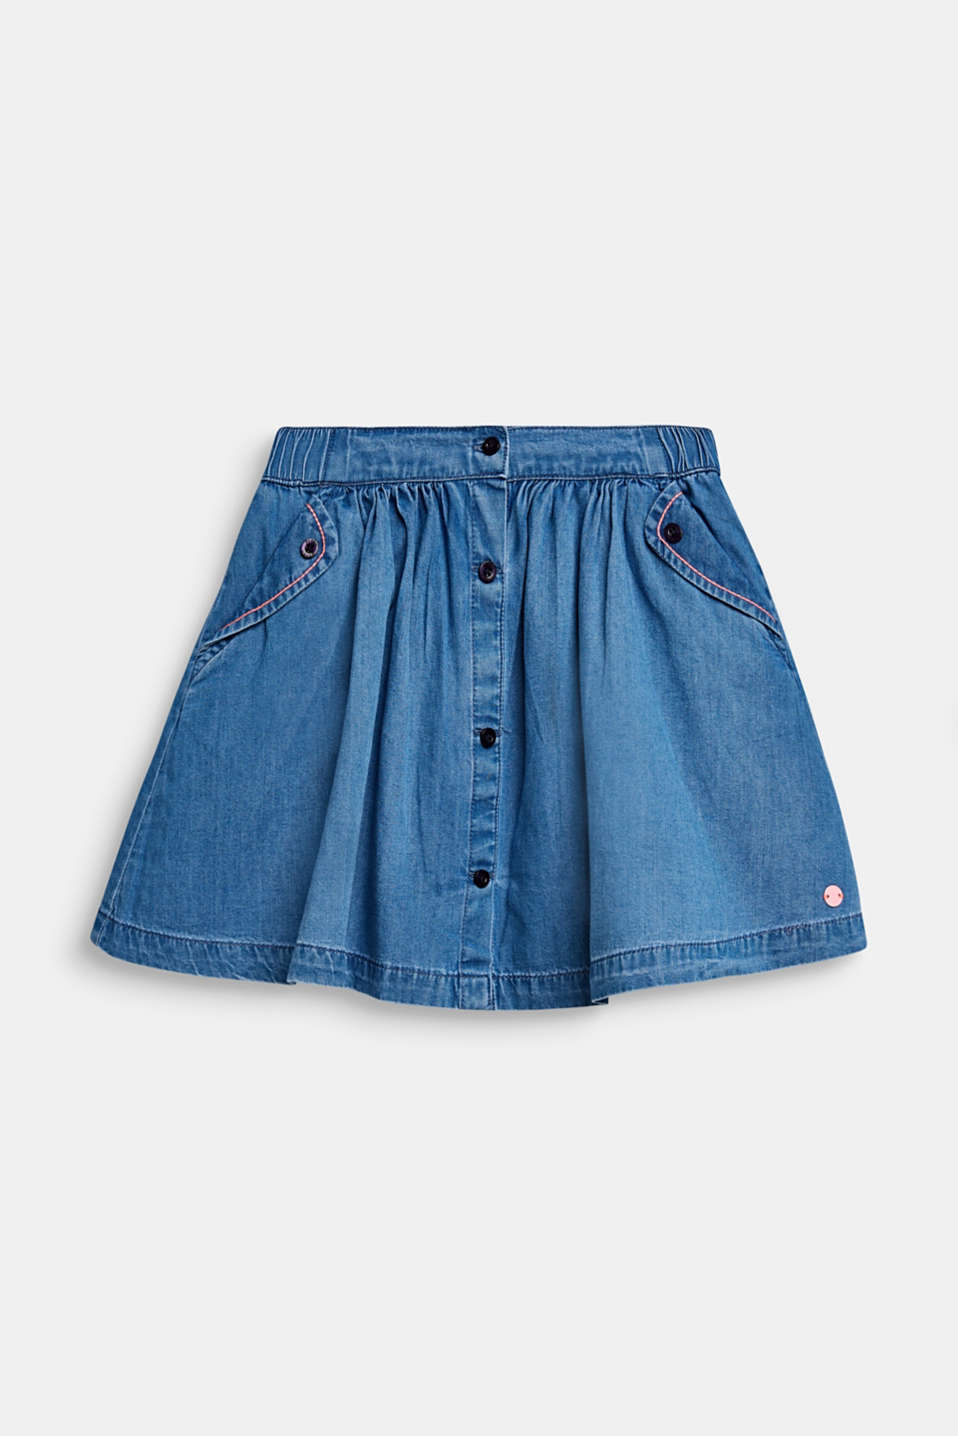 Denim A-line skirt, 100% cotton, MEDIUM WASH DE, detail image number 0